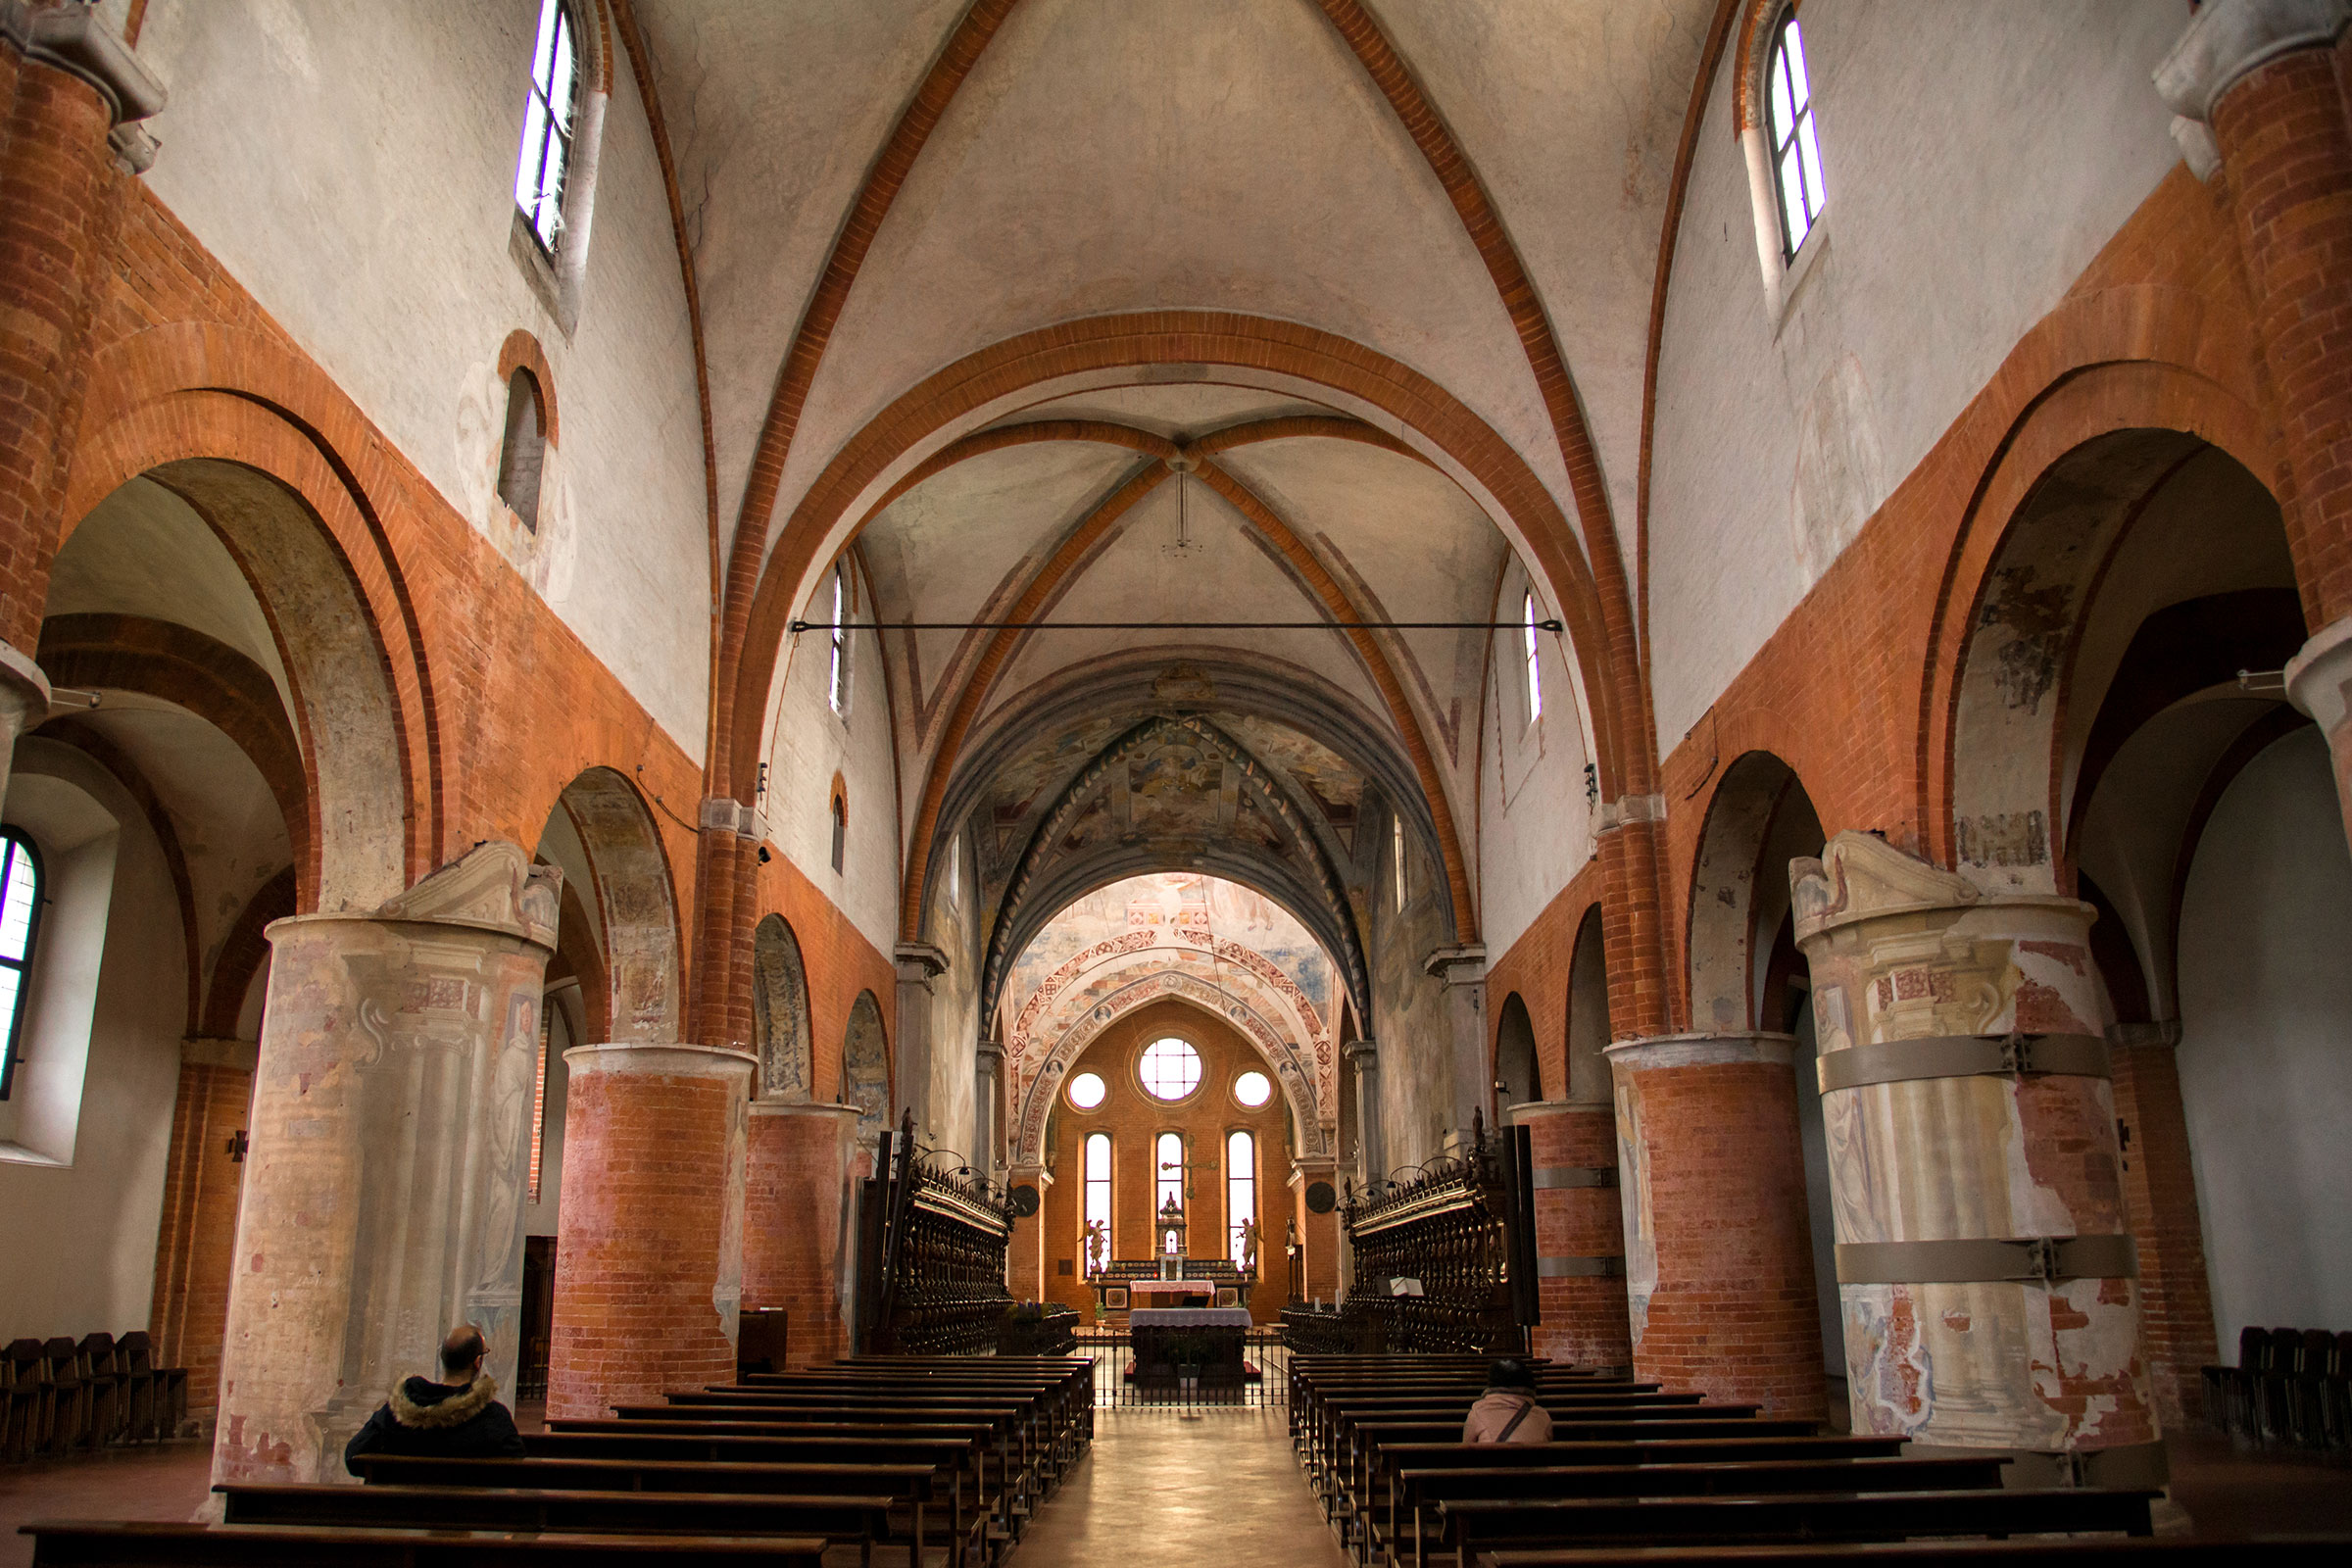 Chiaravalle The Abbey interior